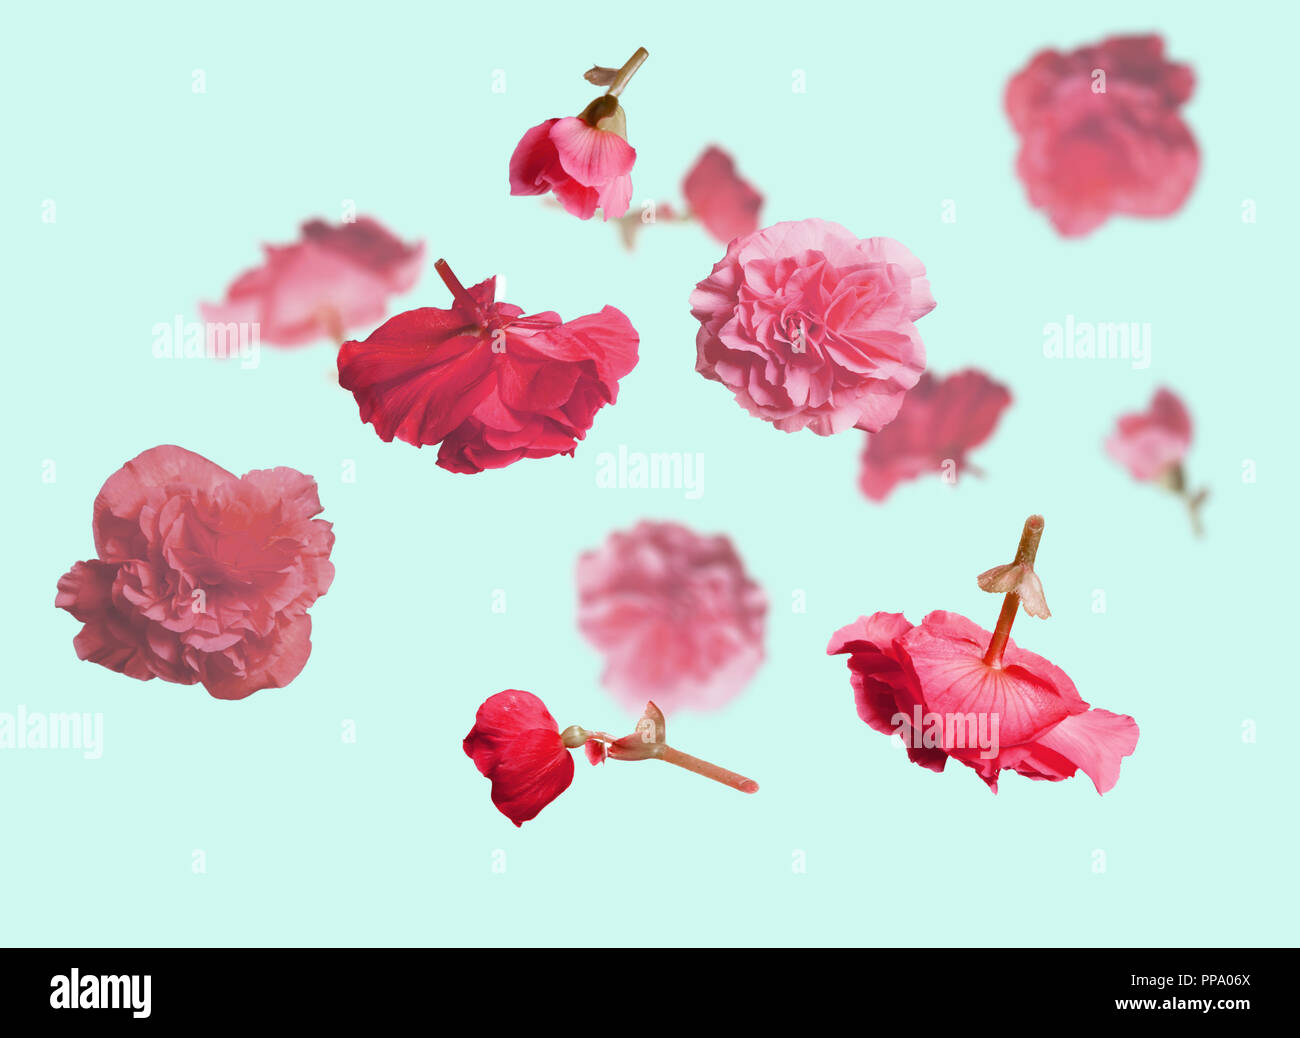 Beautiful Flying Pastel Pink Flowers And Petals At Light Blue